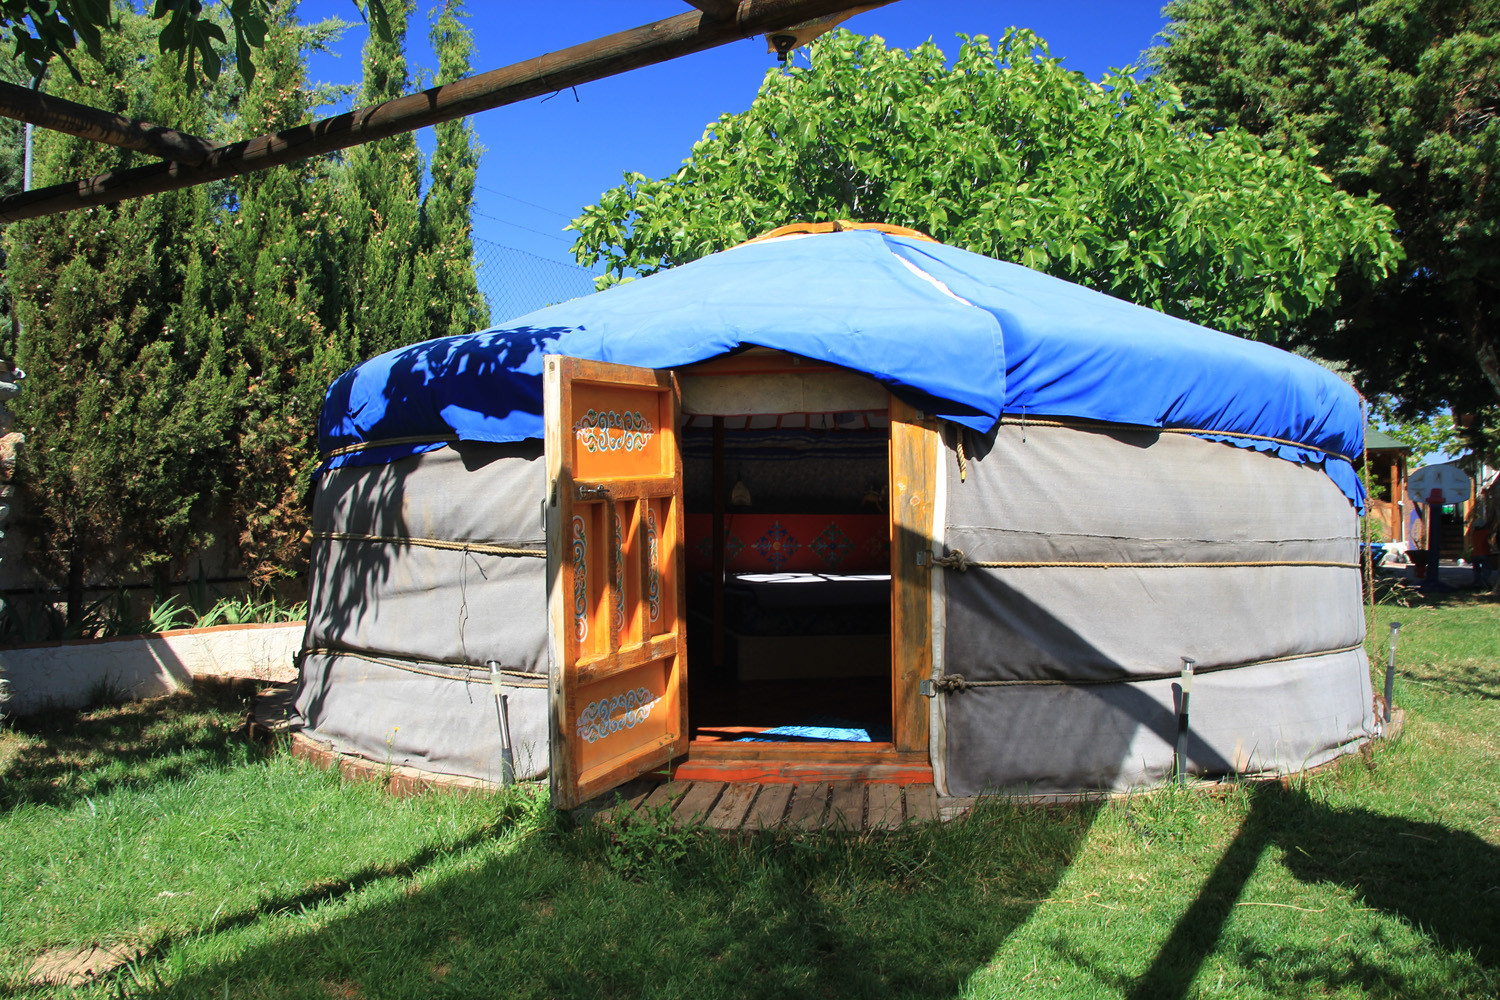 The front view of the Yurt